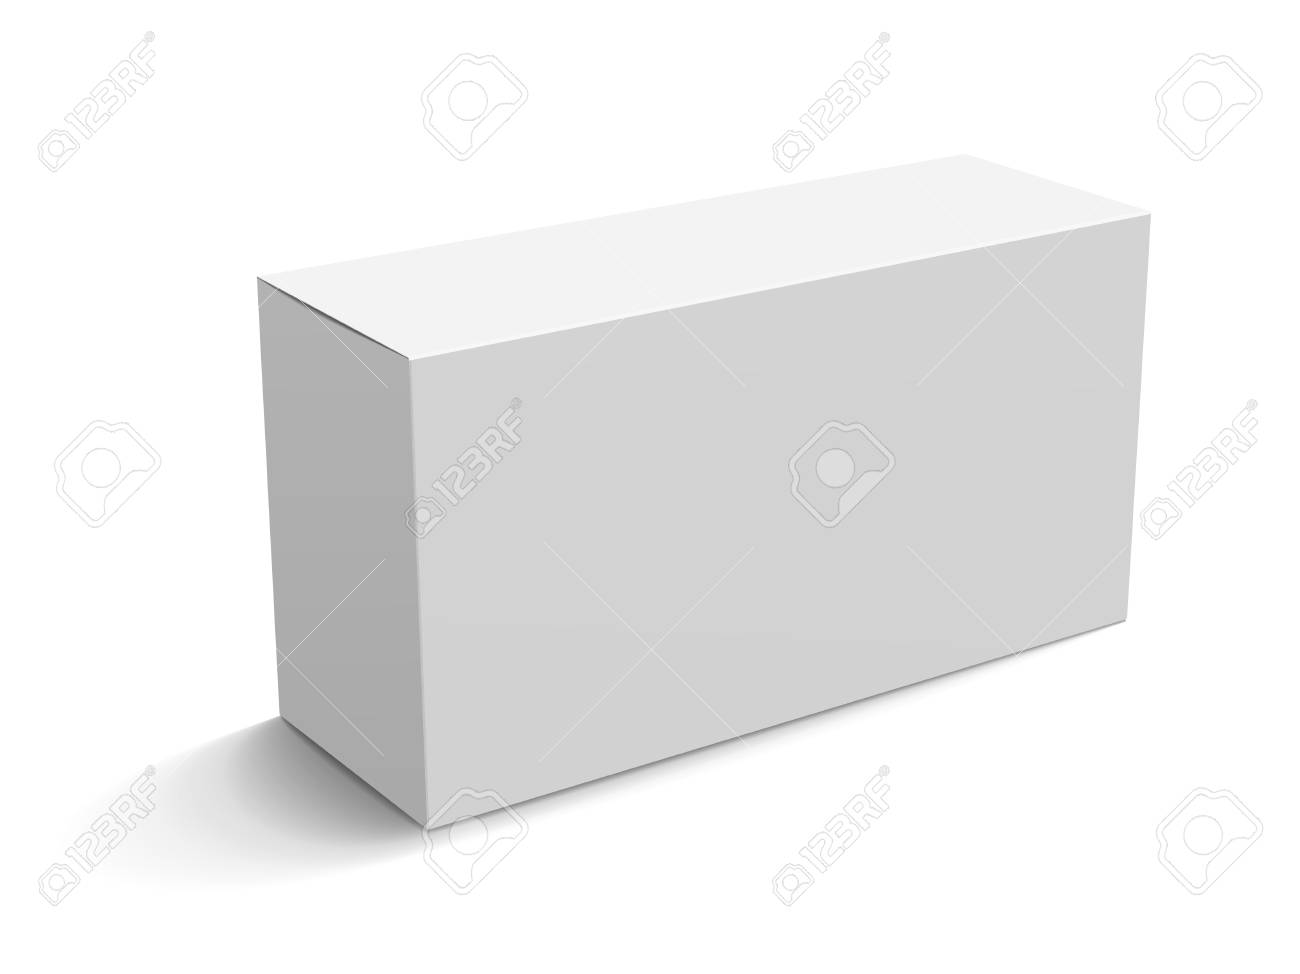 Blank Paper Box Mockup White Box Template For Design Uses In